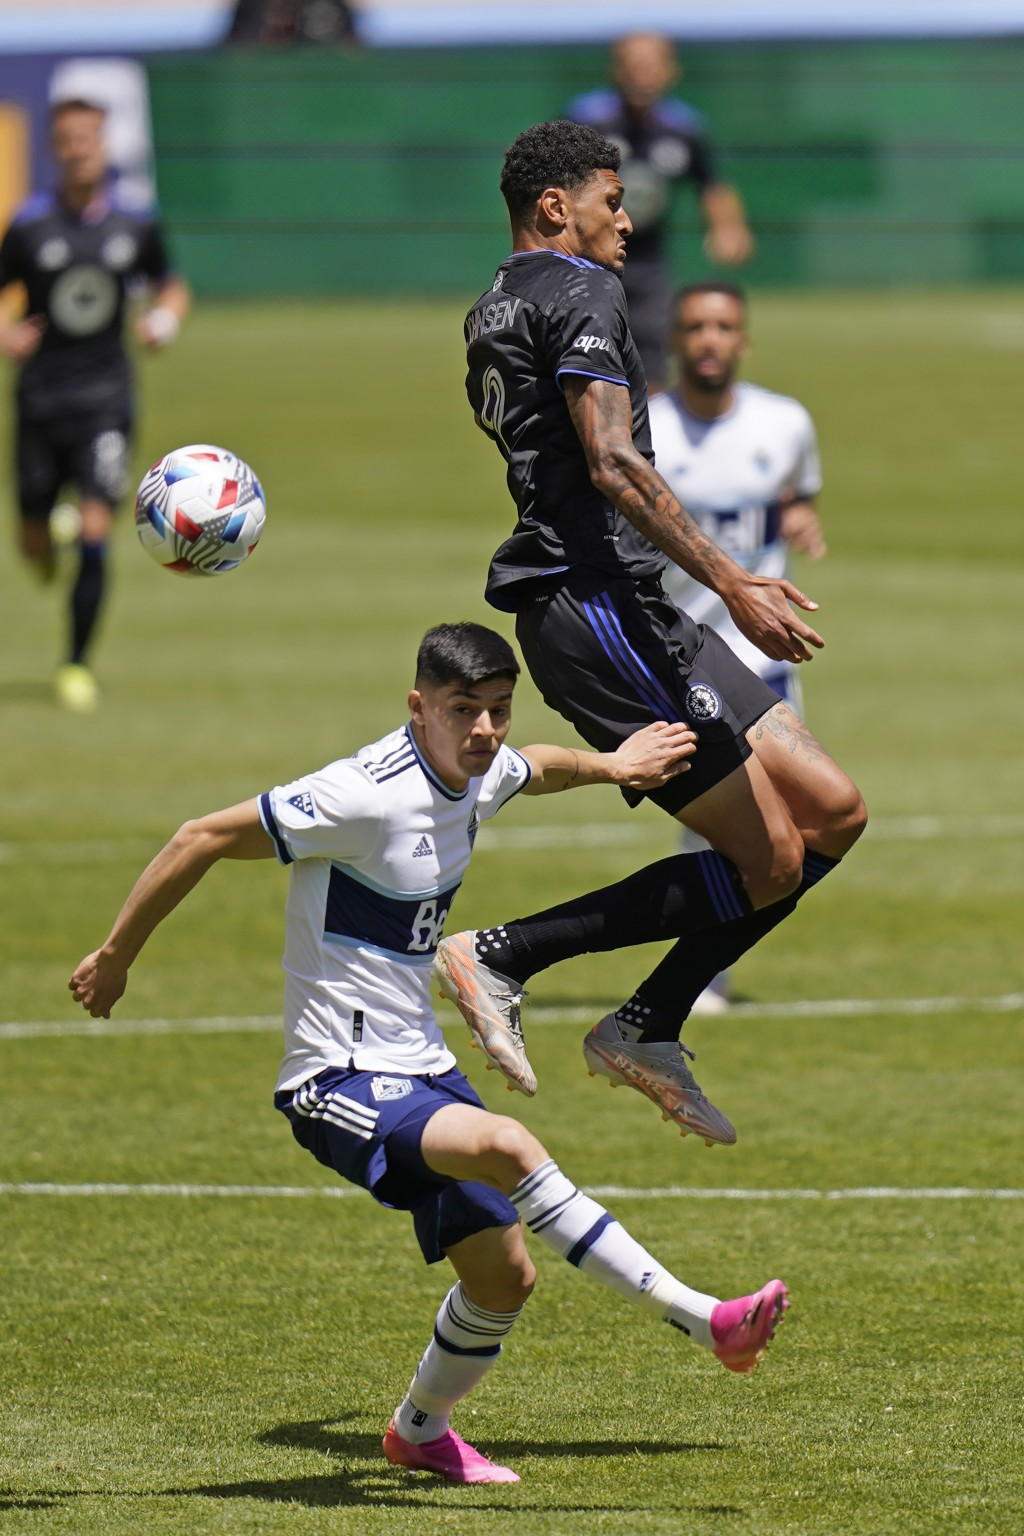 Vancouver Whitecaps defender Cristian Gutierrez, left, and CF Montréal forward Bjorn Johnsen (9) battle for the ball in the first half during an MLS s...